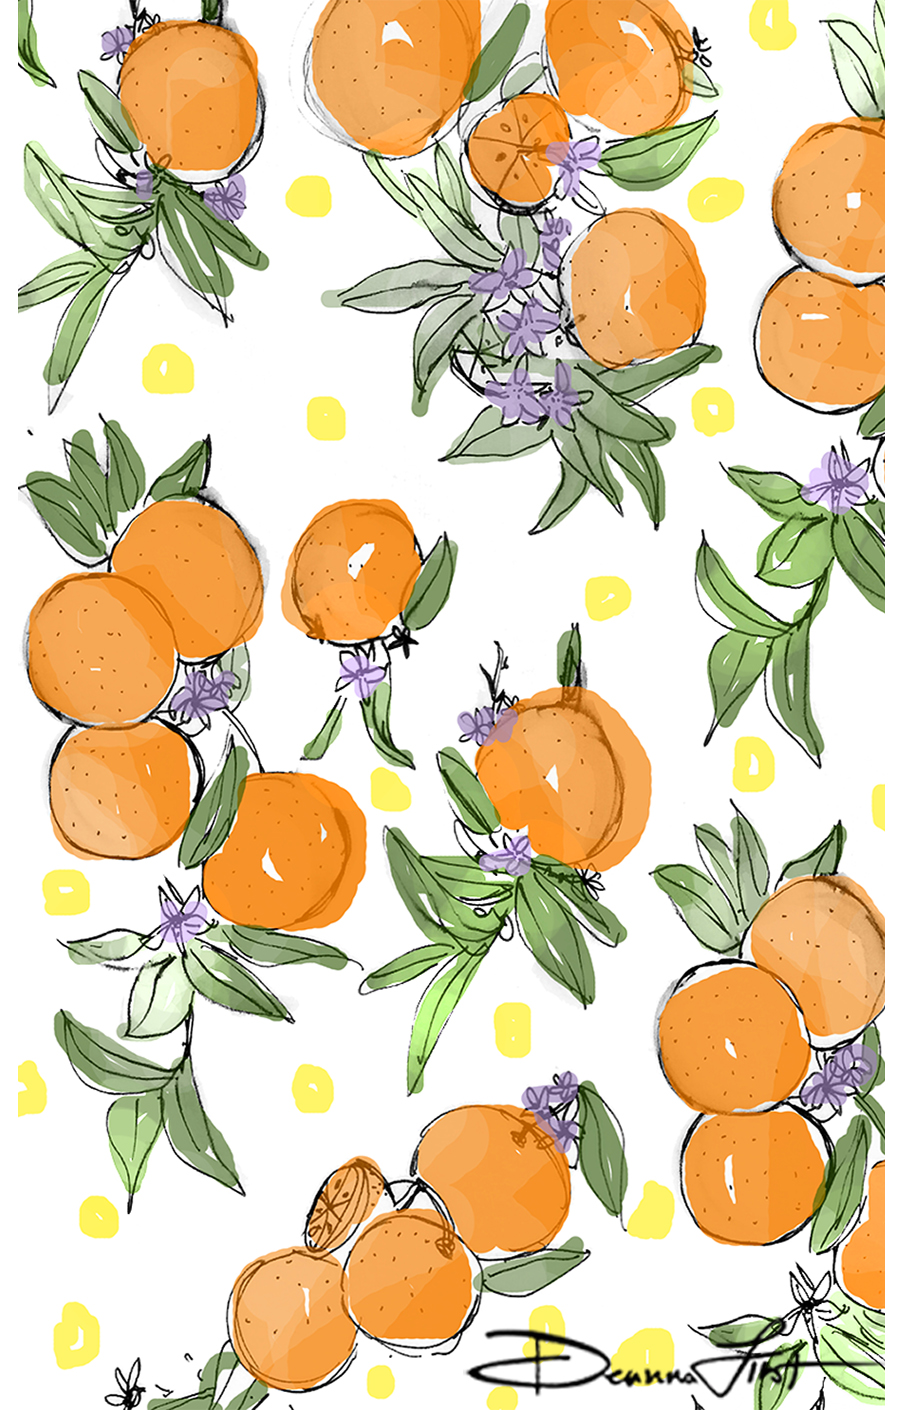 oranges_dots_deannafirst_small.jpg